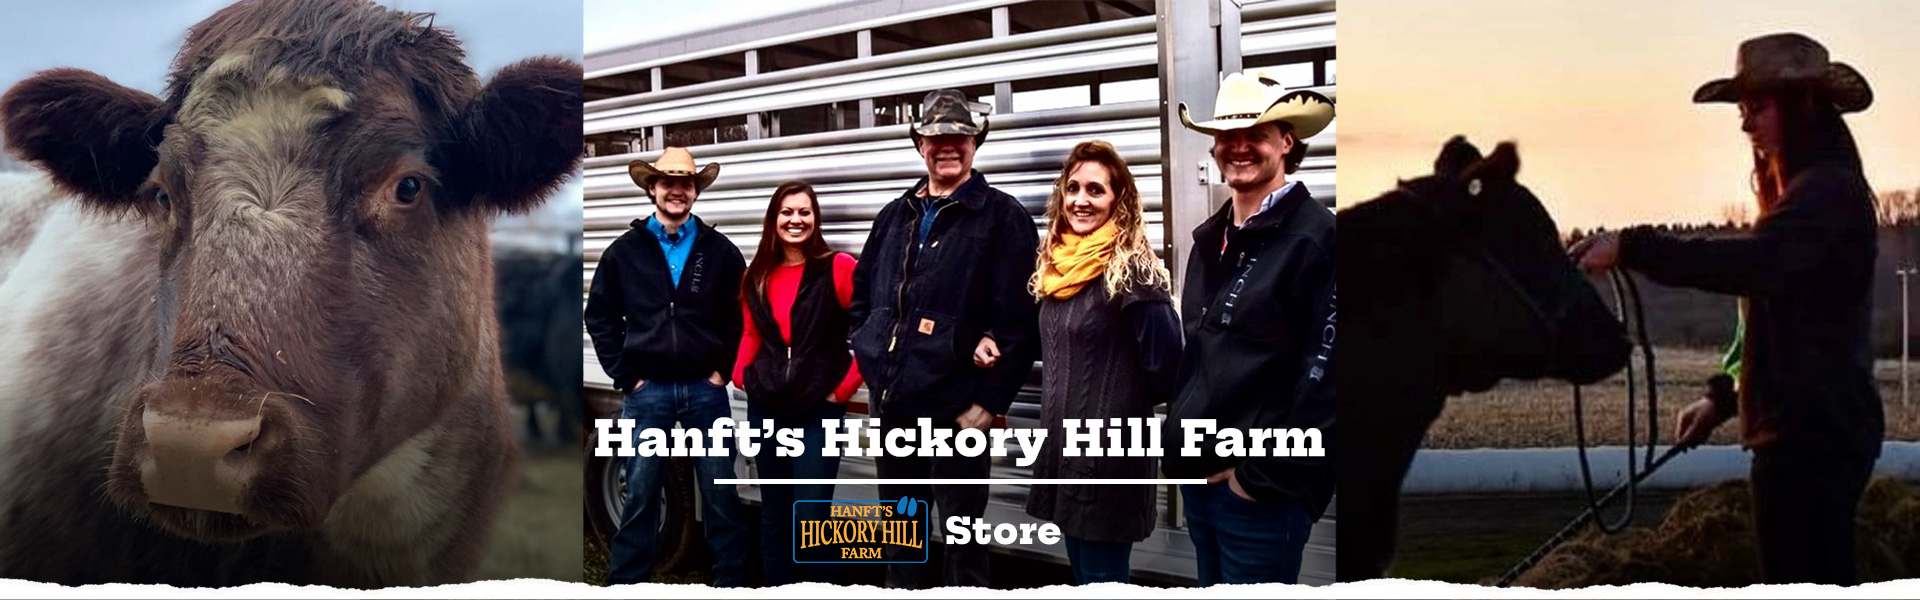 hanft-s-store-page-1900x600-banner-10-13.jpg